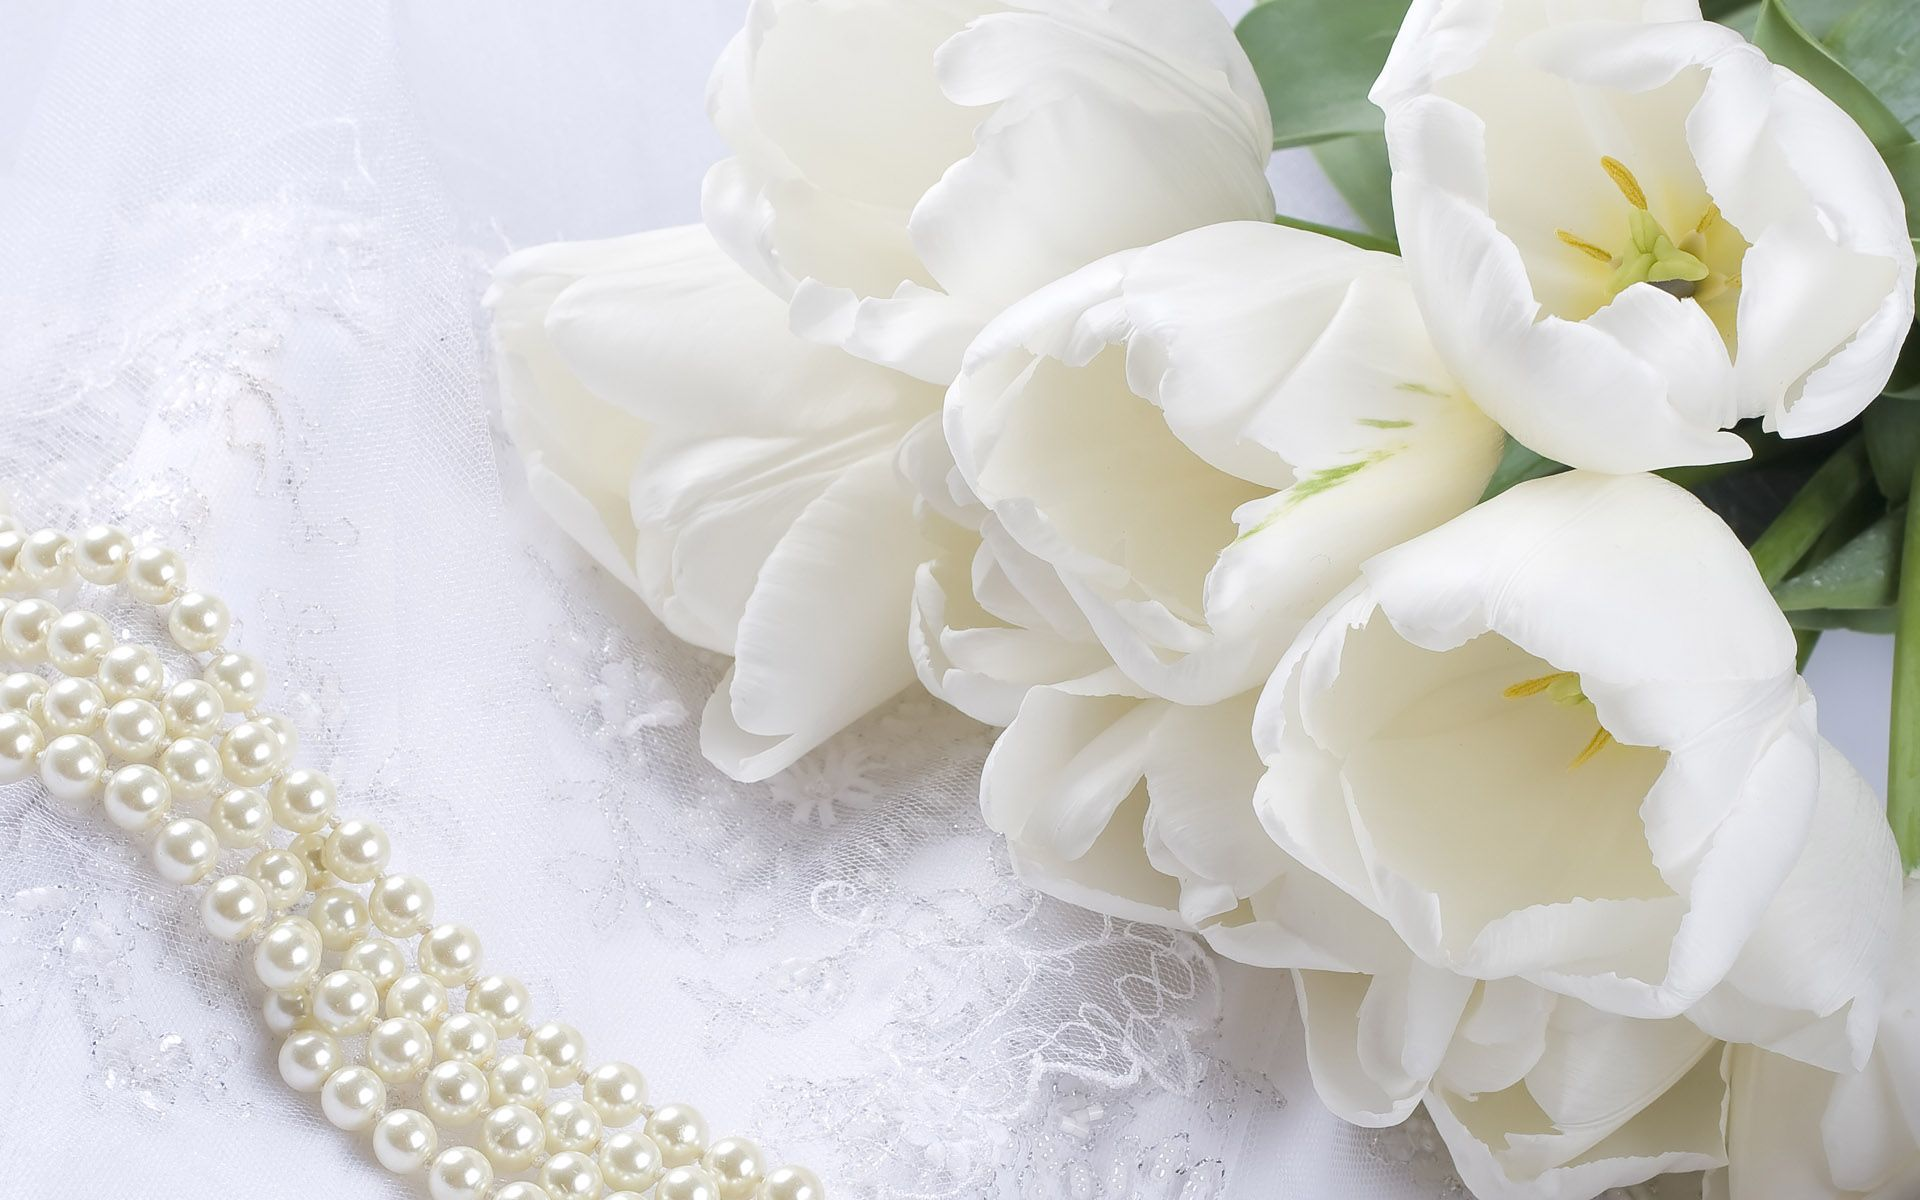 White flowers nice flowers white pinterest white flowers explore white tulips white roses and more dhlflorist Image collections